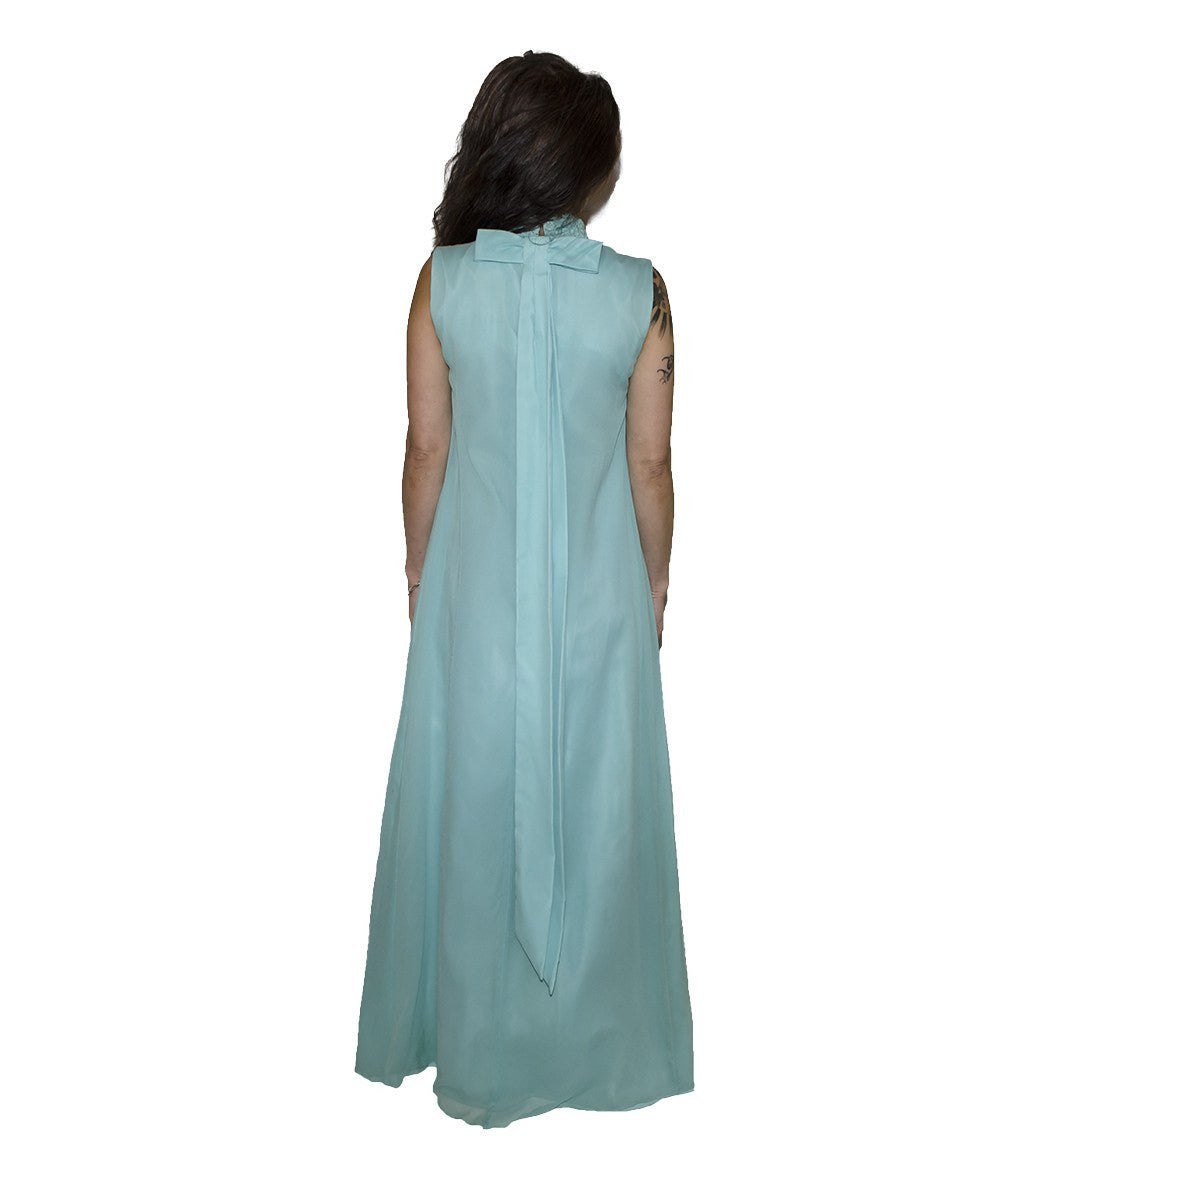 1970s Aqua Blue Column Gown 4 in Silk Chiffon & Lace